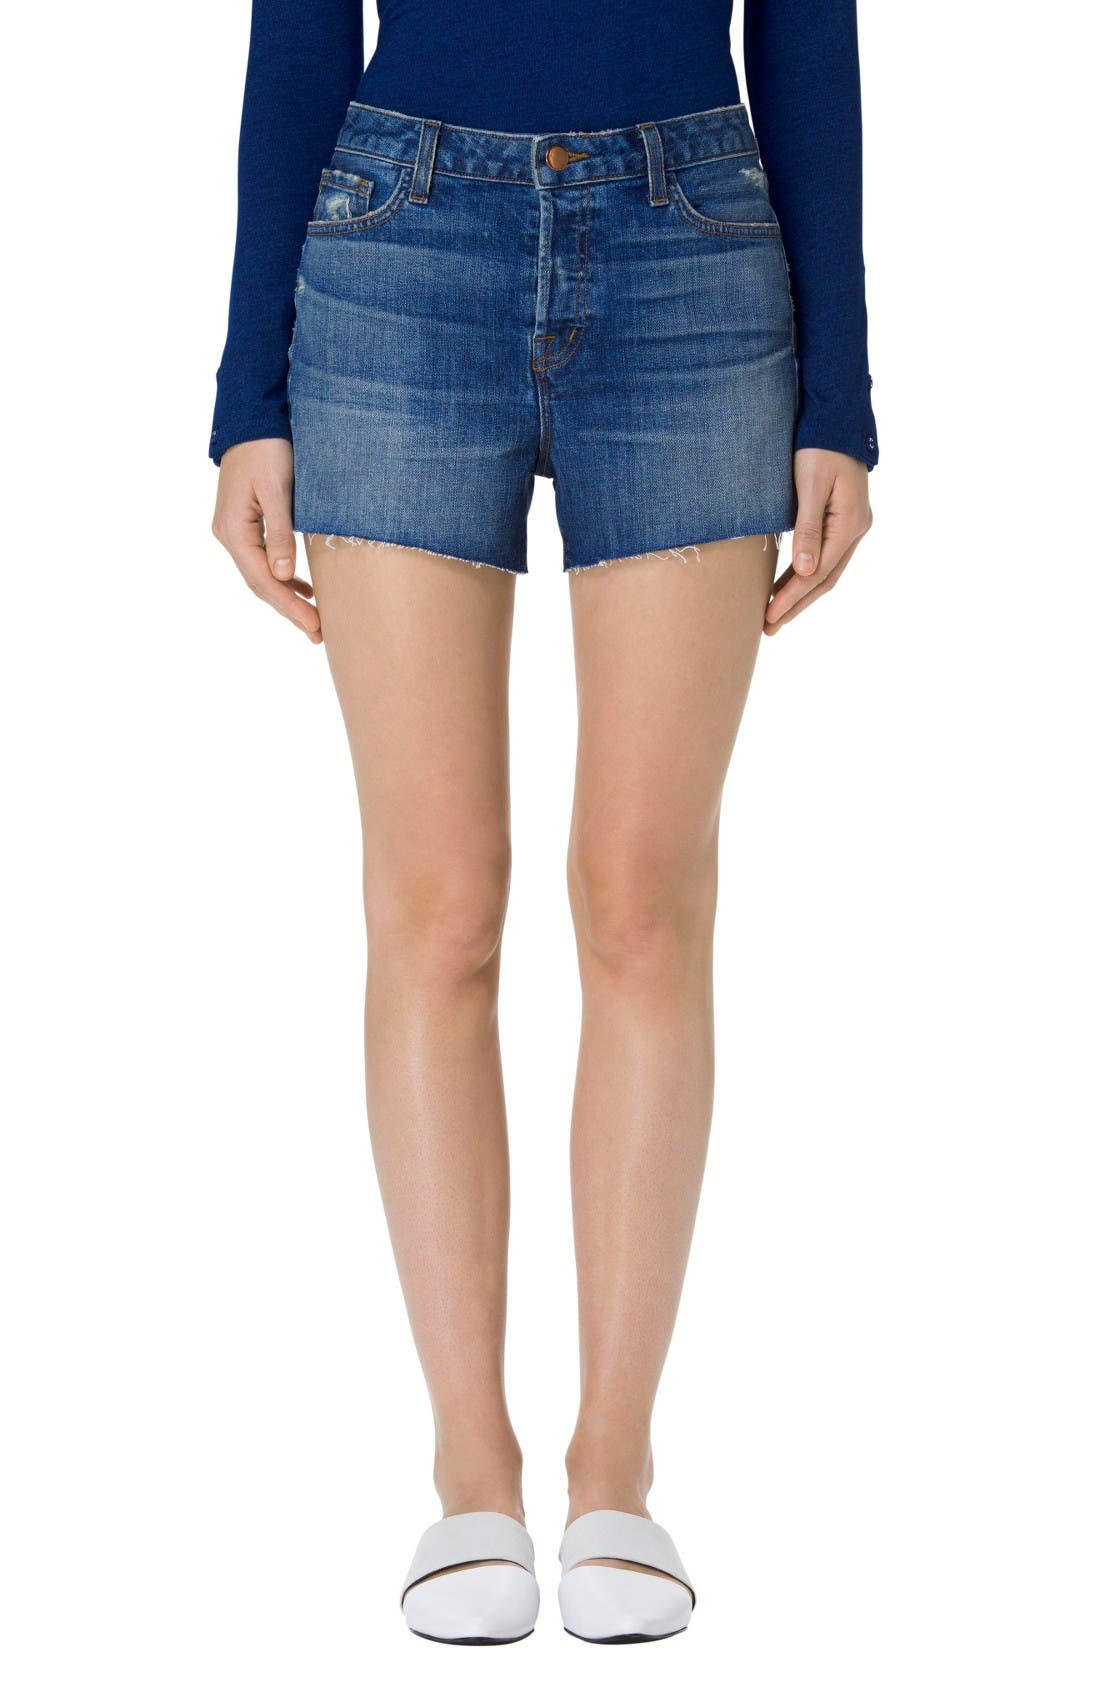 J BRAND Gracie High Rise Cutoff Shorts